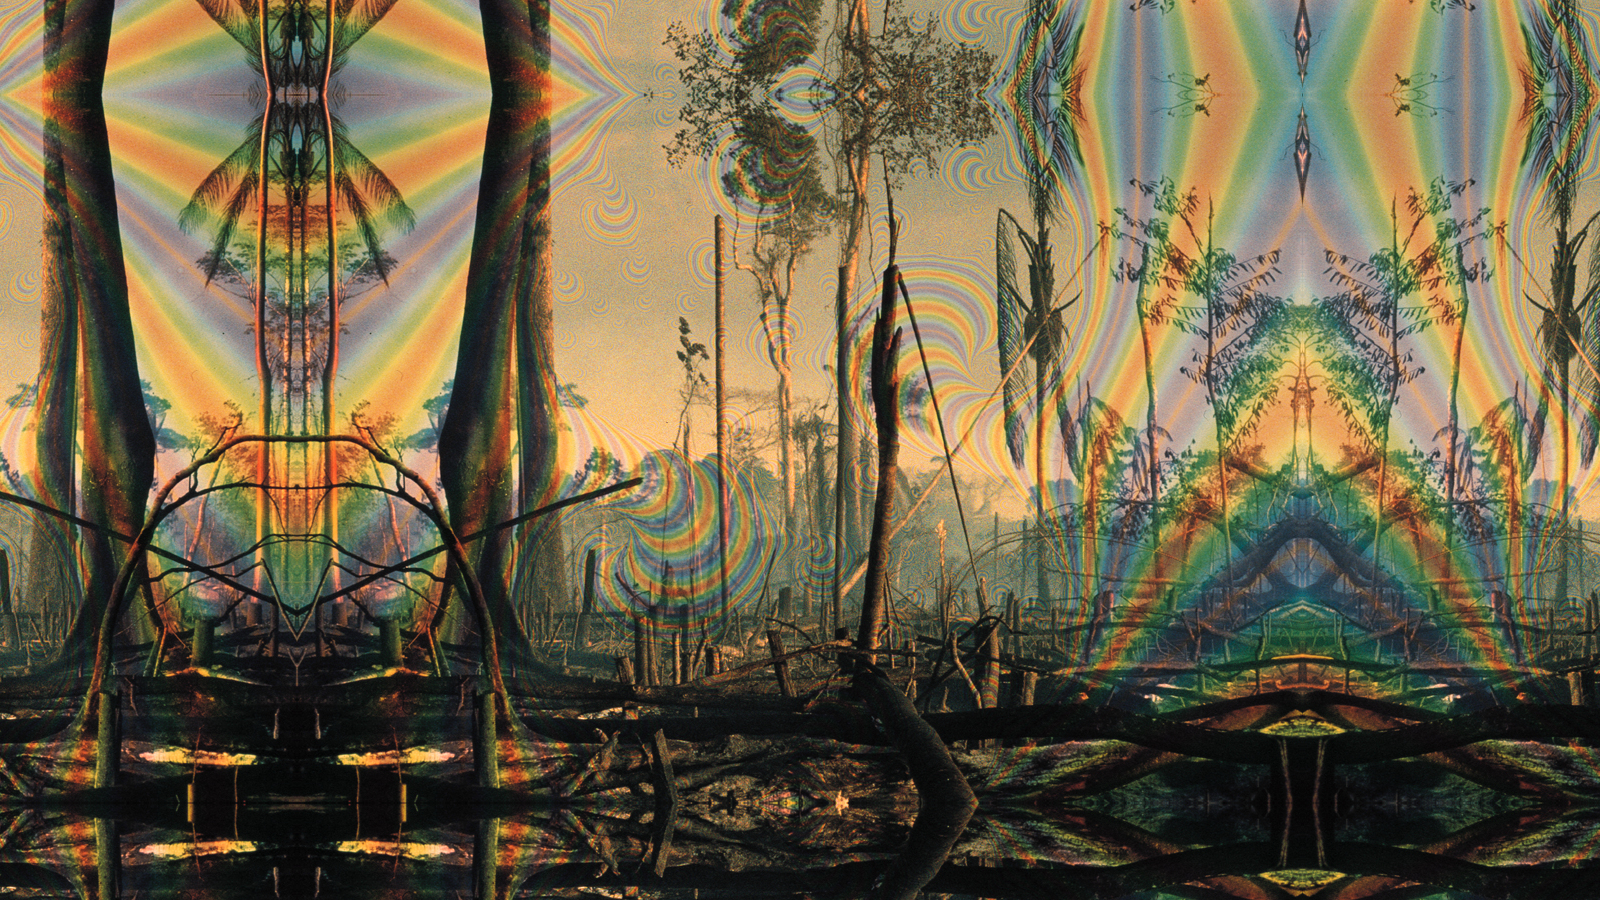 Trees psychedelic destroyed rainbows HD Wallpaper